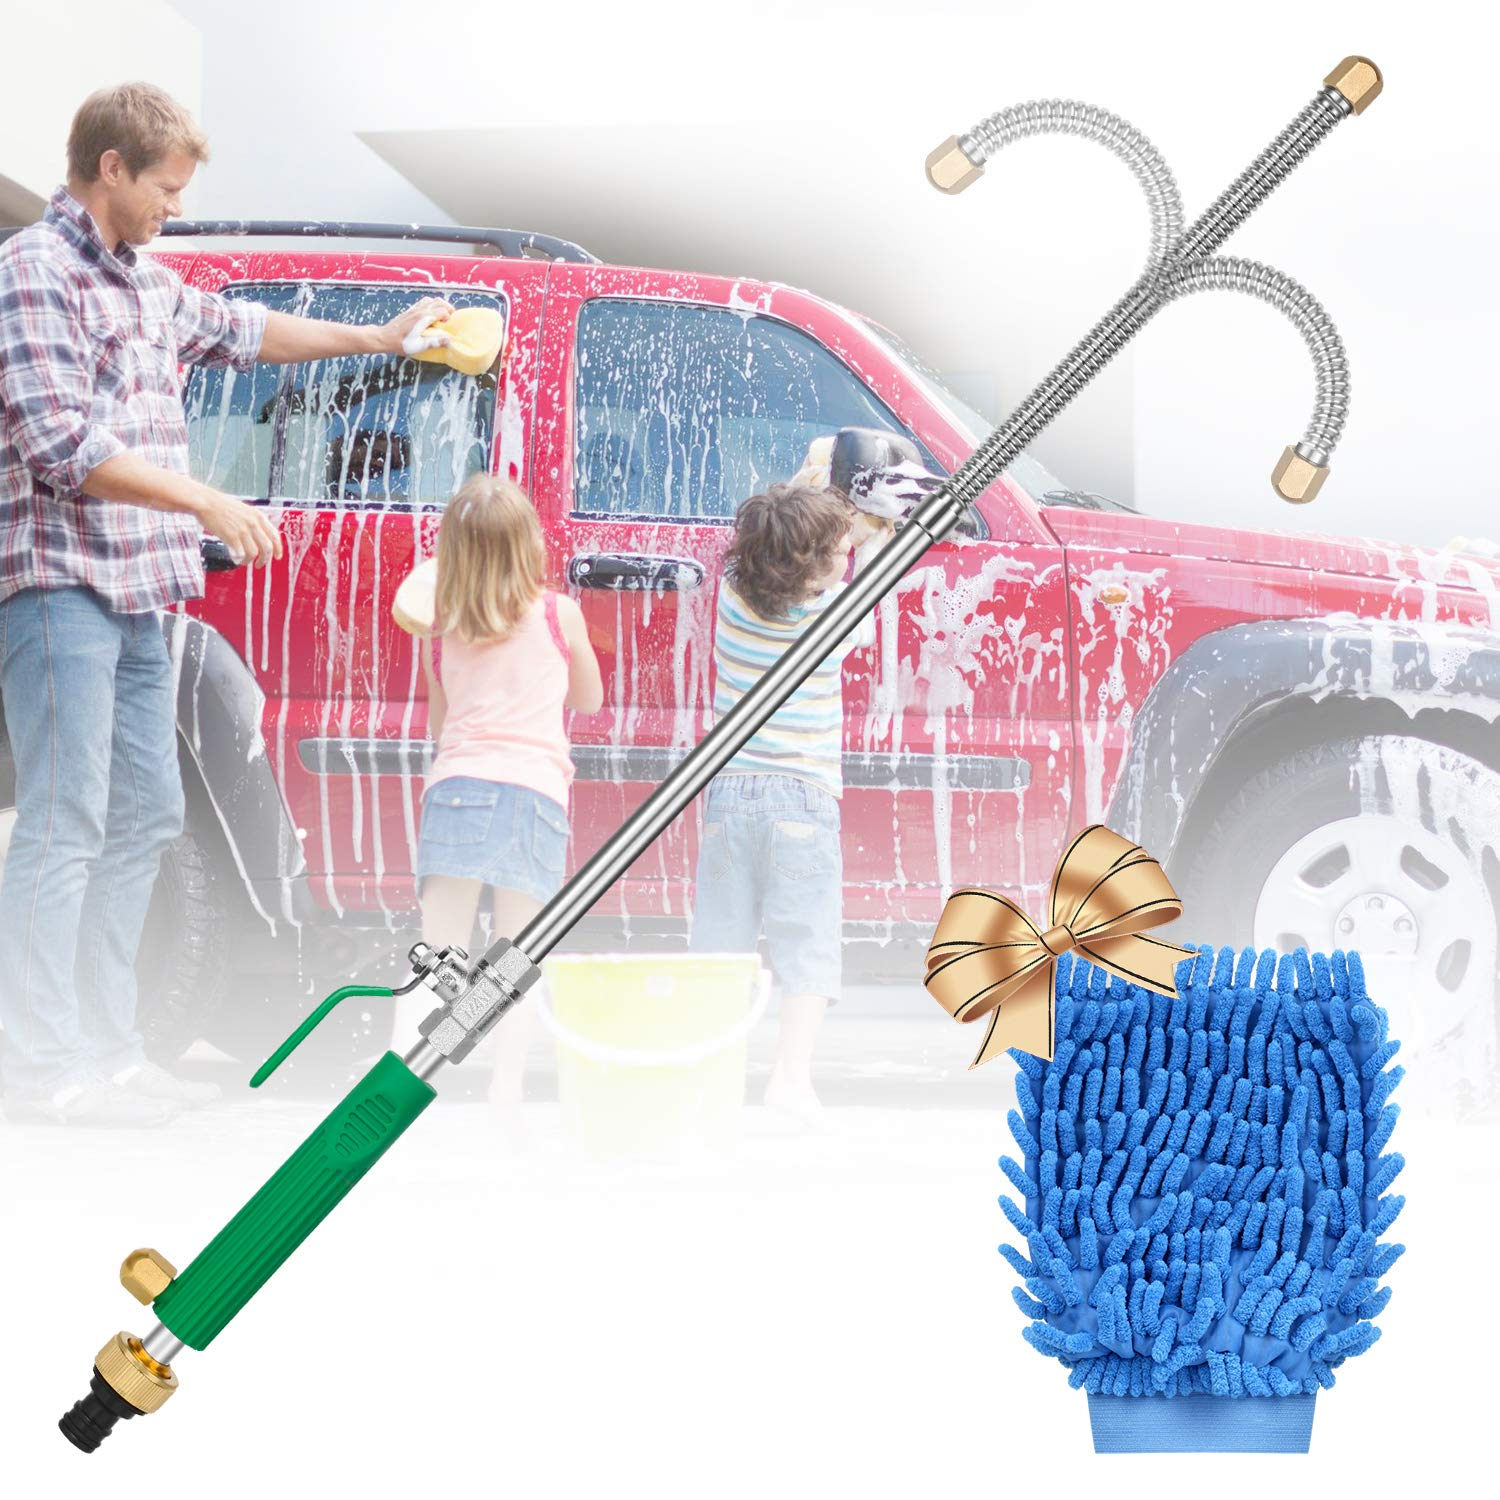 Hydro Jet High Pressure Power Washer, Extension Power Water Hose Nozzle Wand, Flexible Hose Attachment Sprayer Gun for Car Washing Gutter & Window Cleaning with Free Scrubbing Mitt by Niteblue